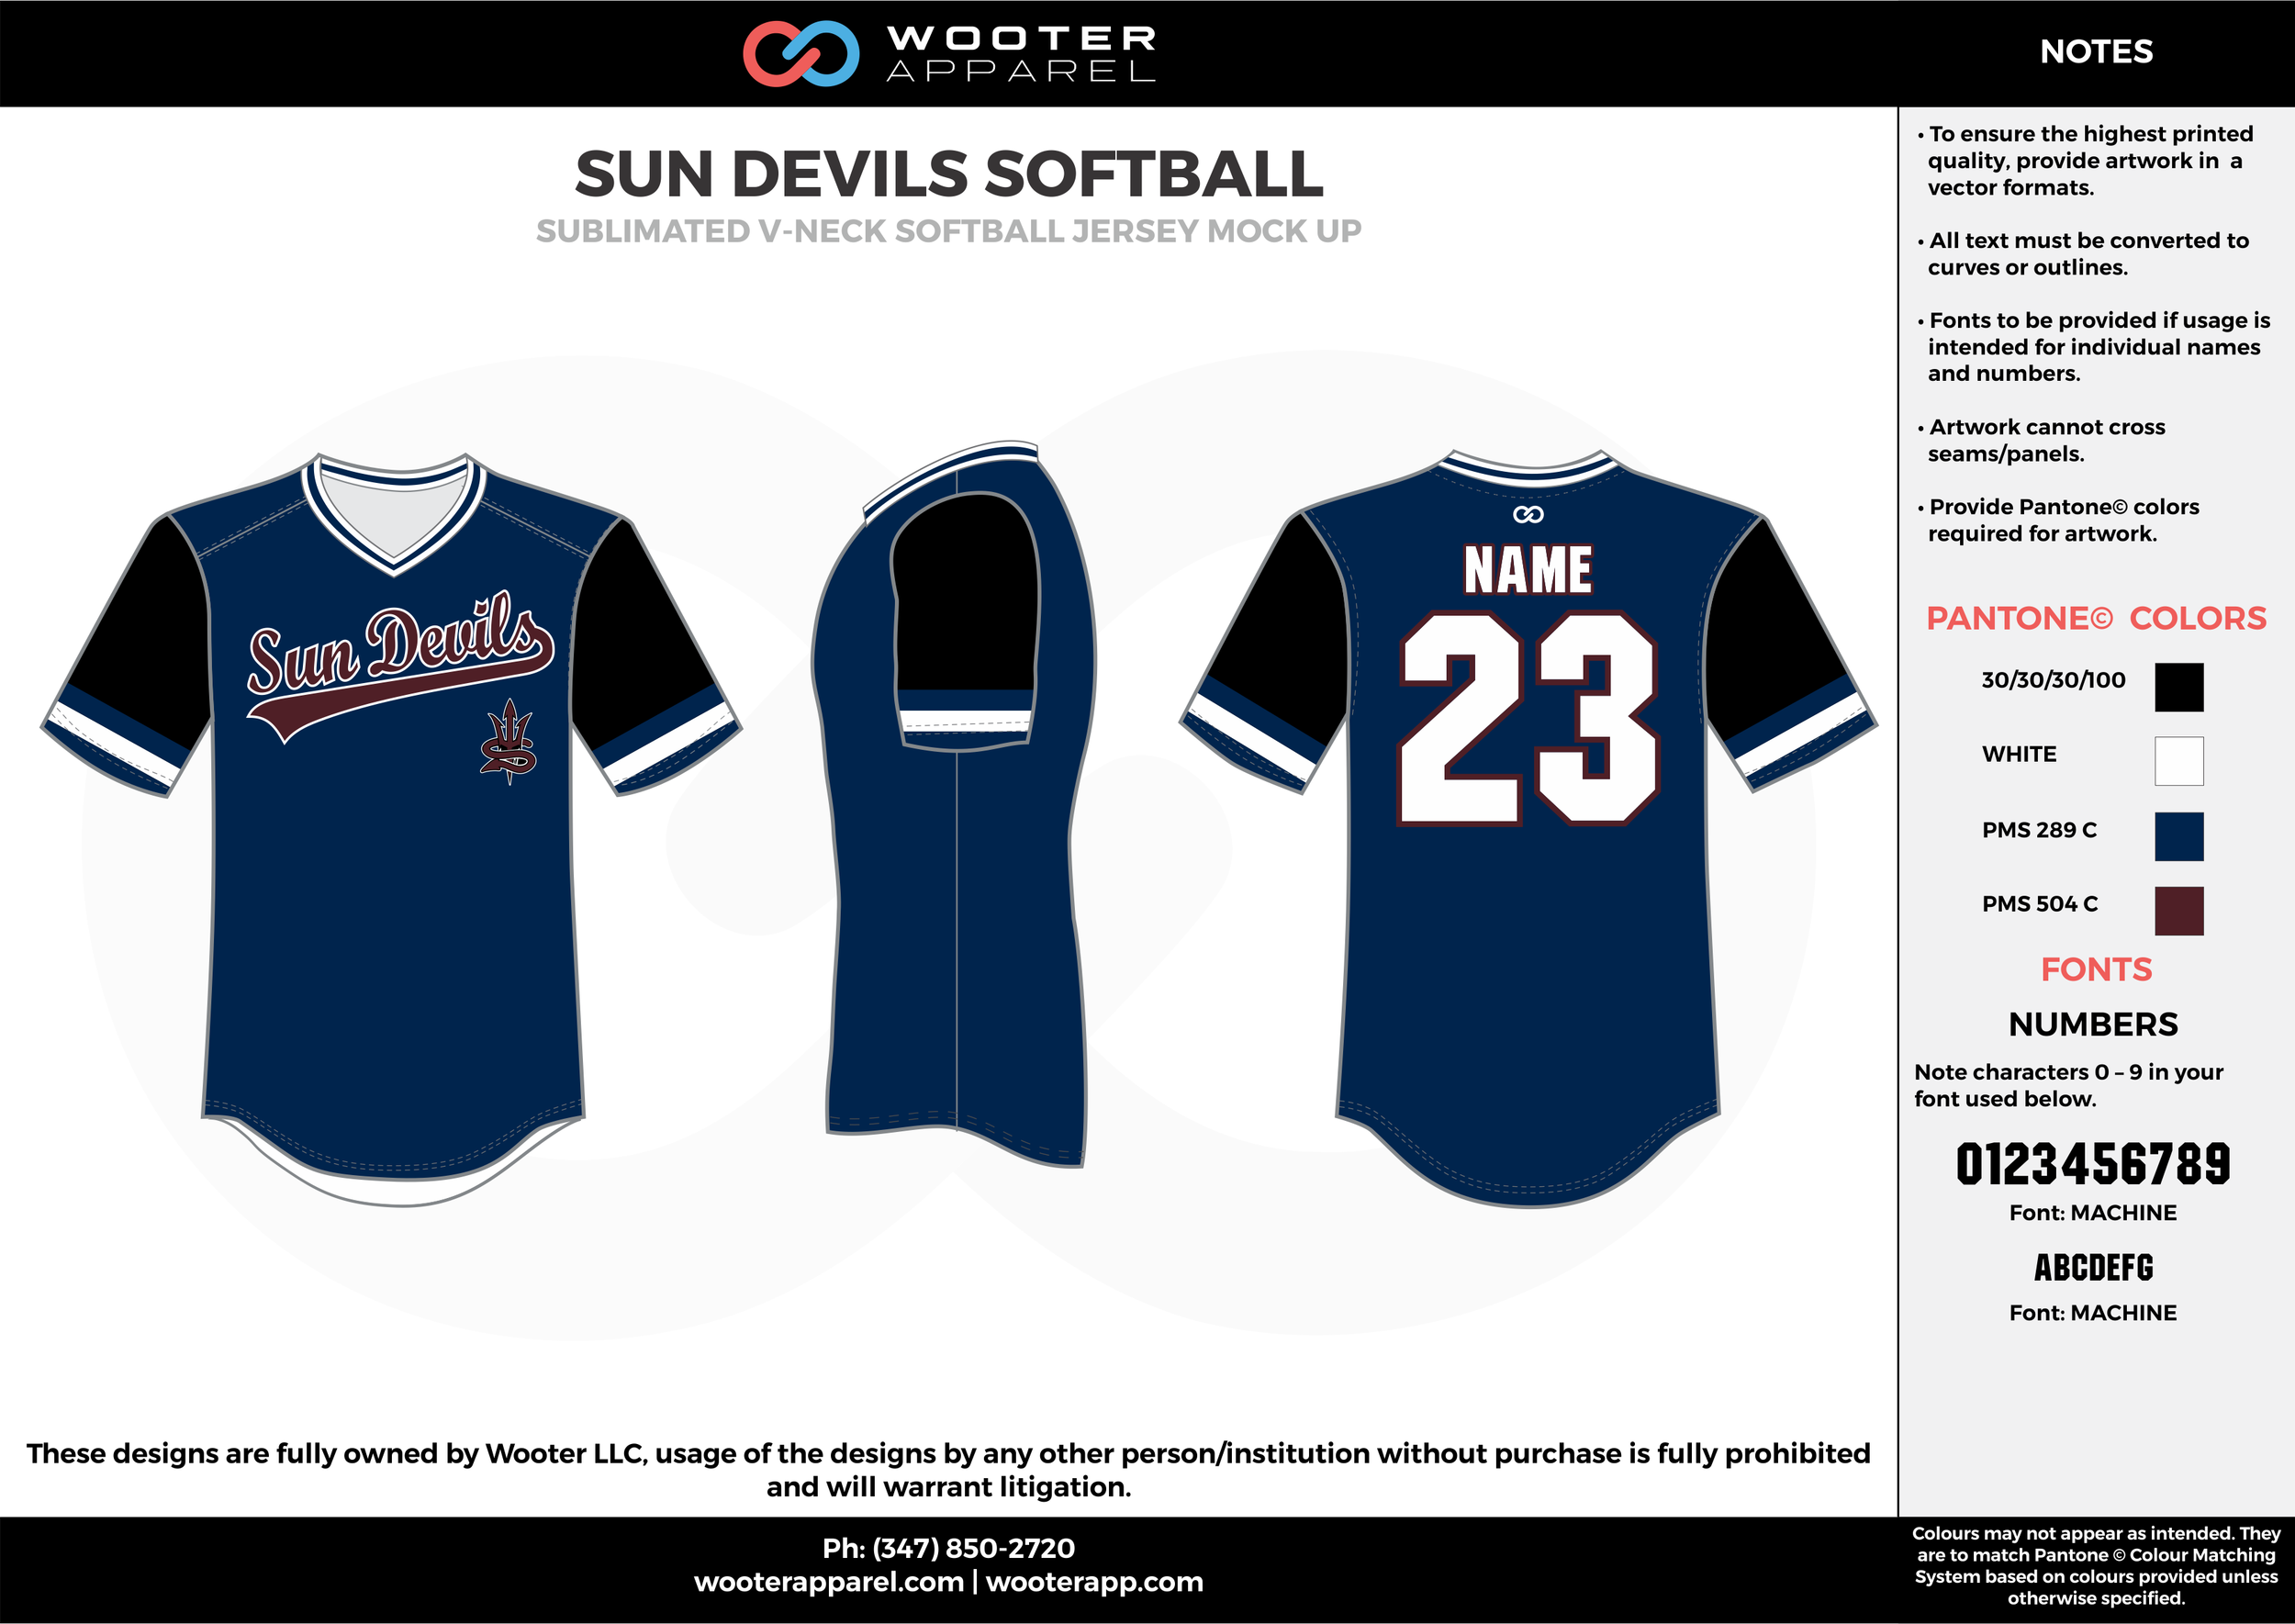 SUN DEVILS SOFTBALL navy blue black white red baseball uniforms jerseys tops